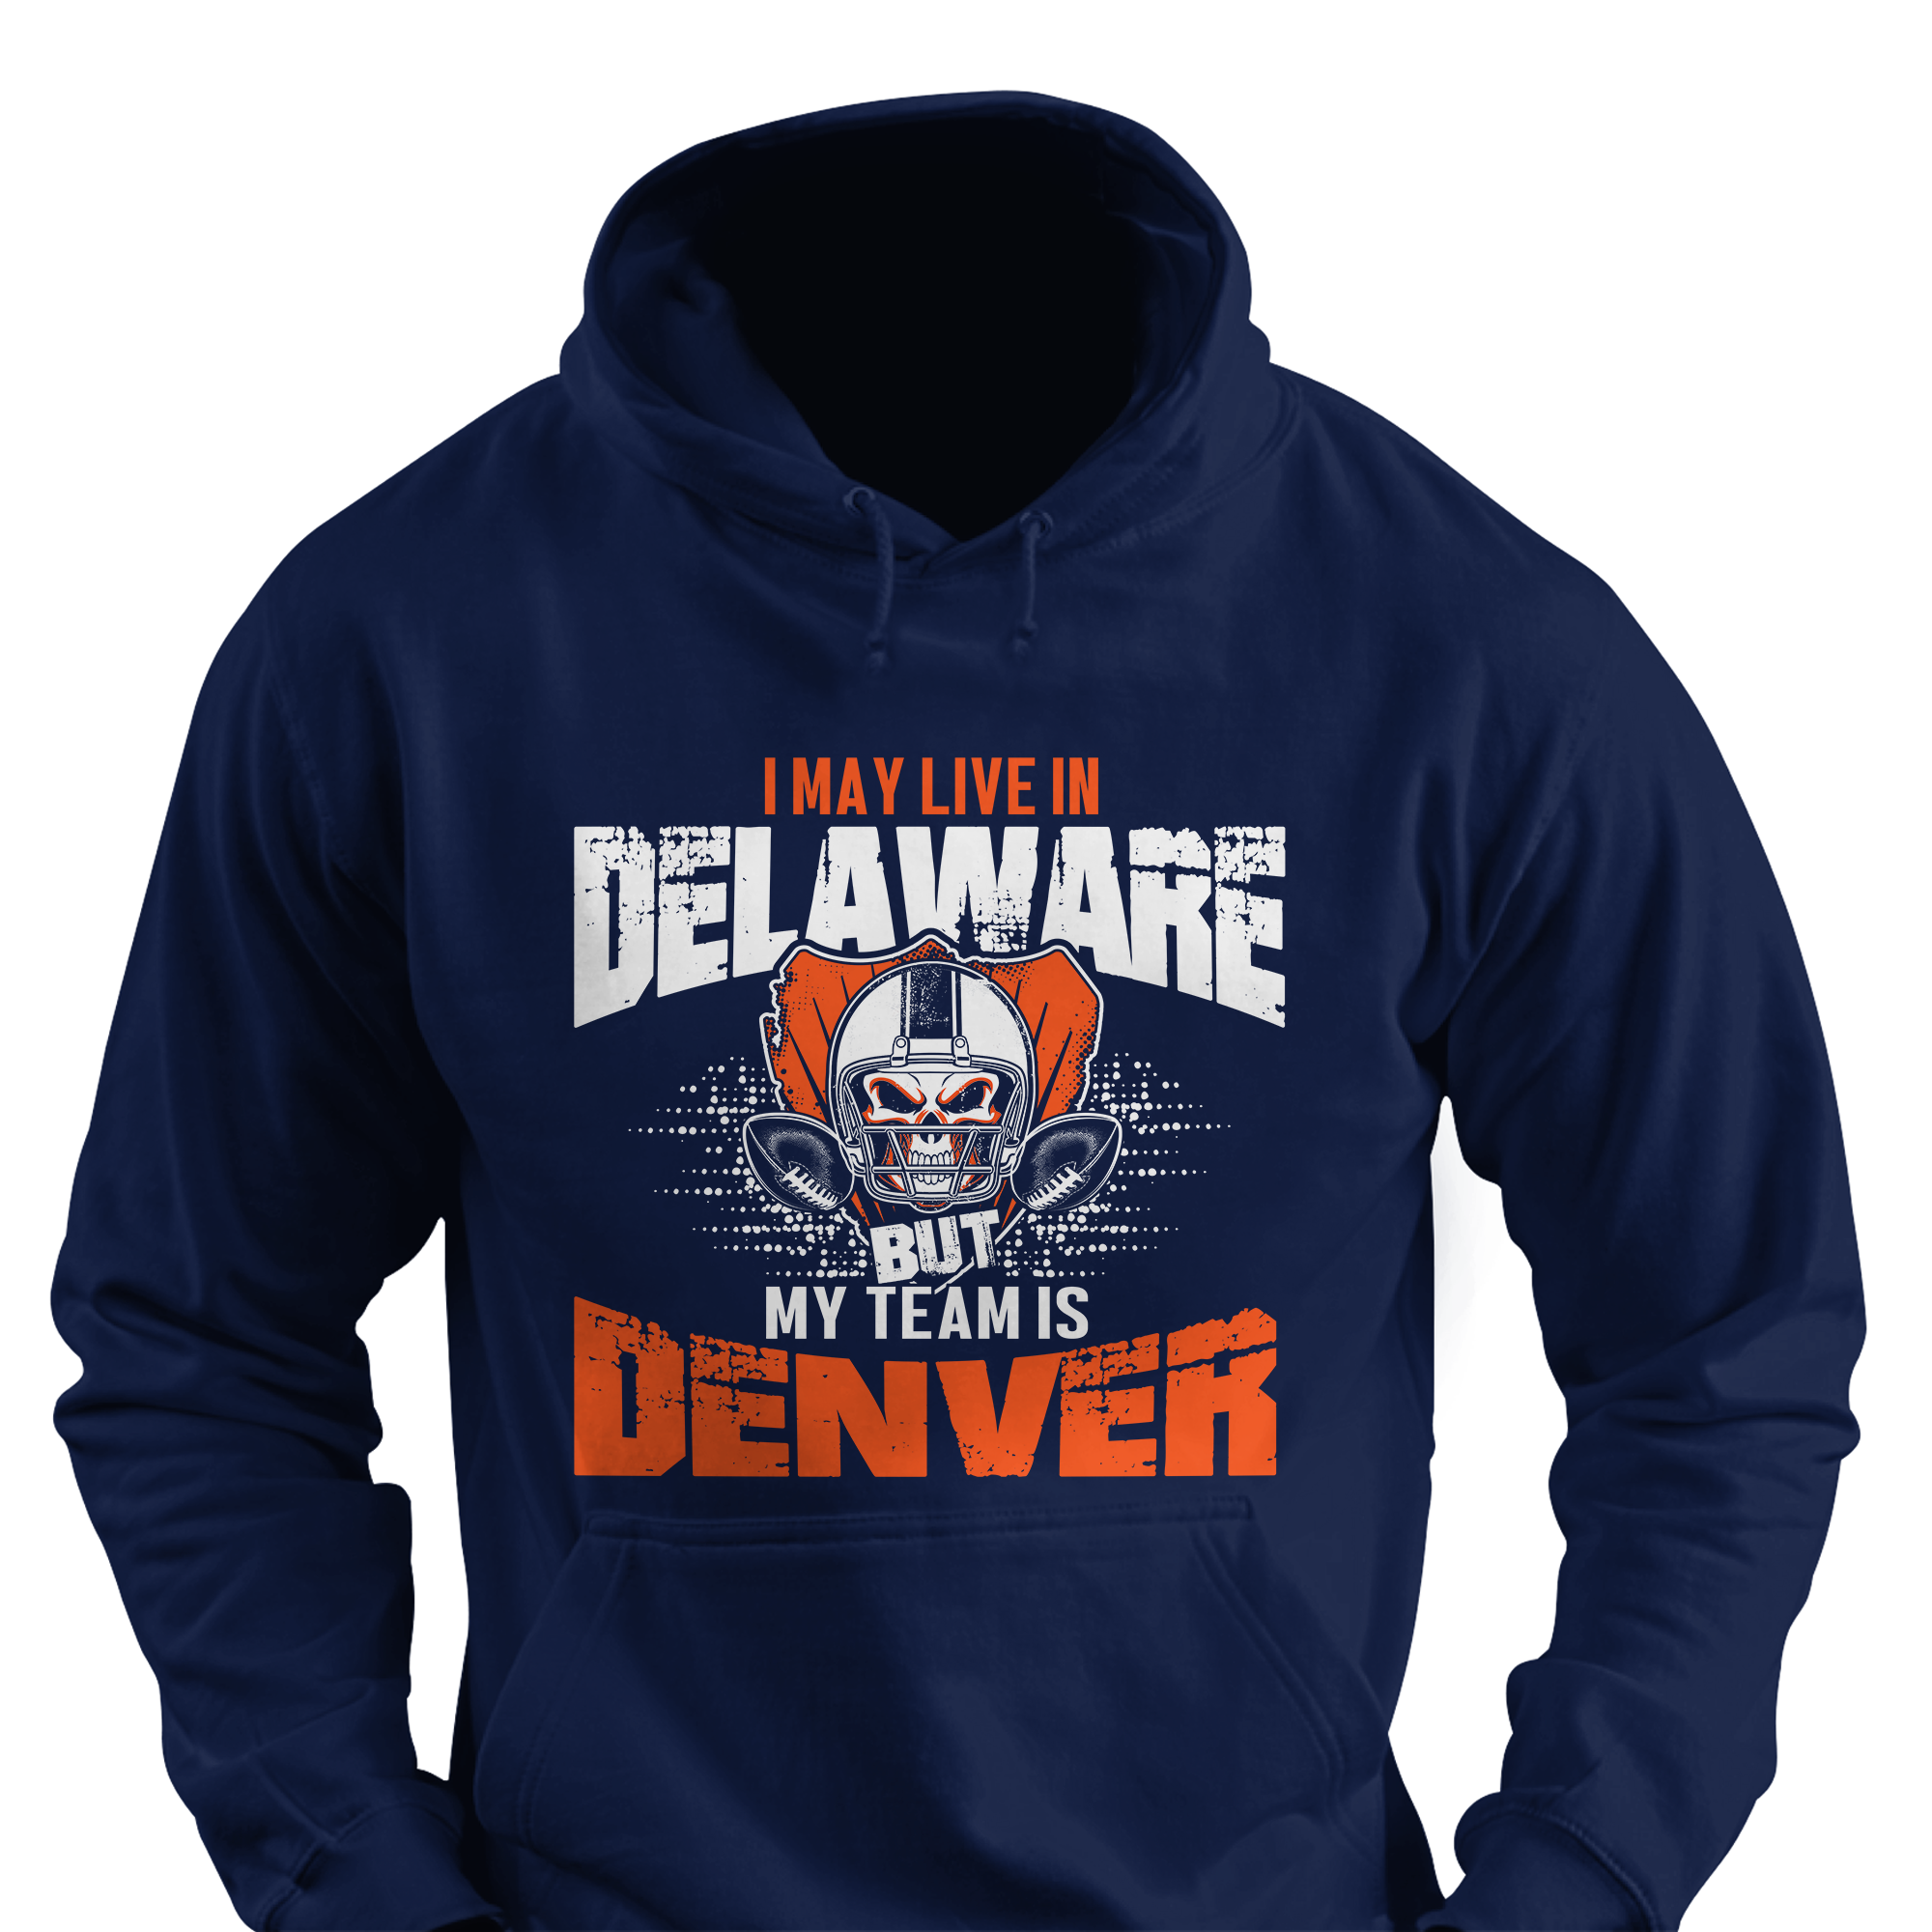 I May Live in Delaware but My Team is Denver